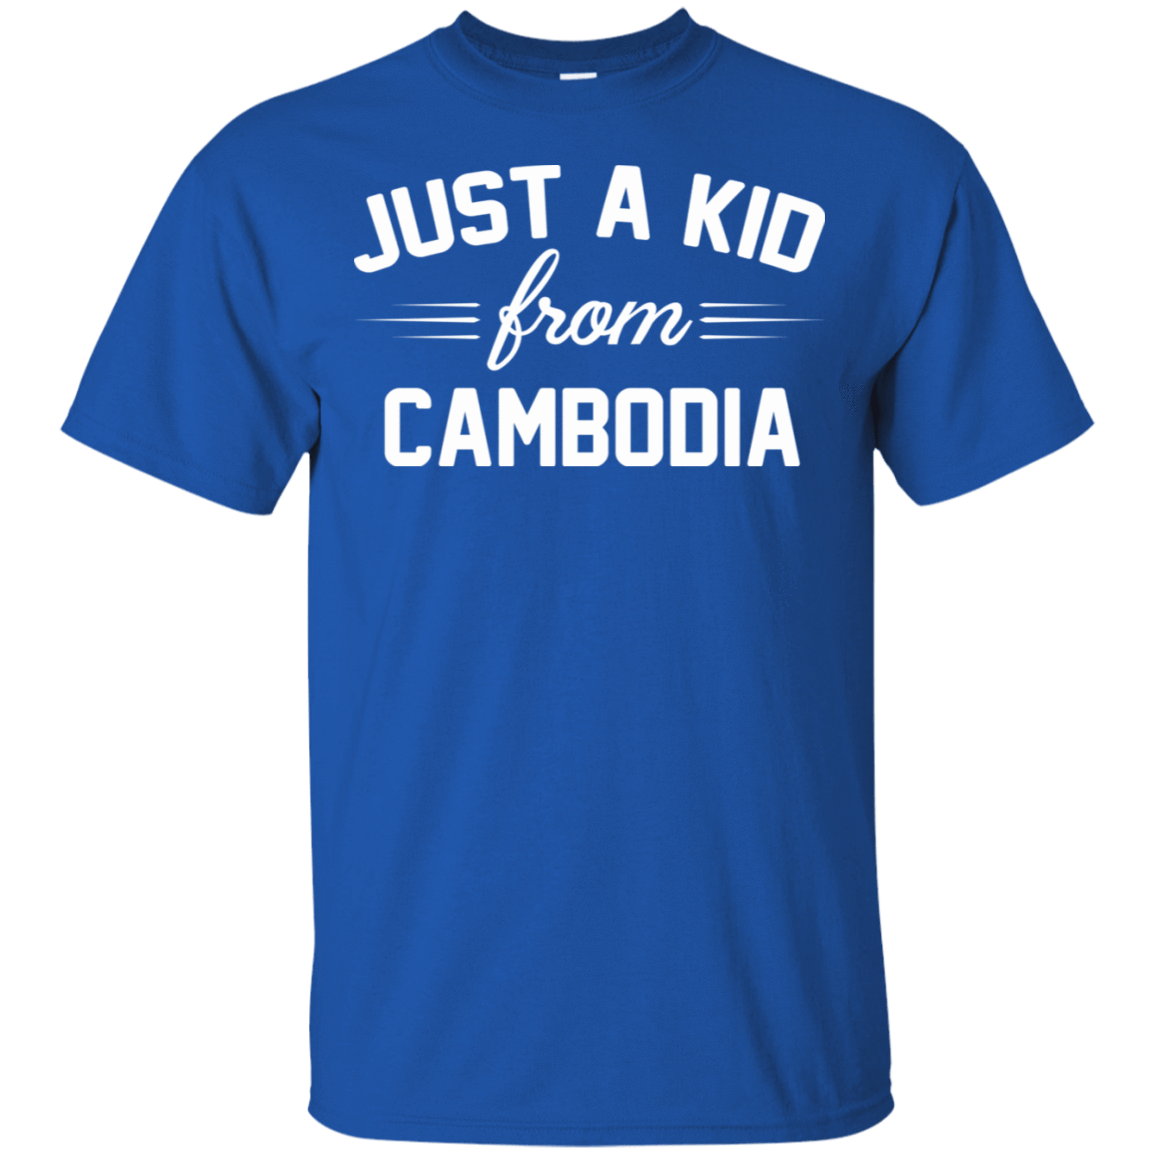 Just a Kid Store | Cambodia T-Shirts, Hoodie, Tank 22-110-72092772-249 - Tee Ript